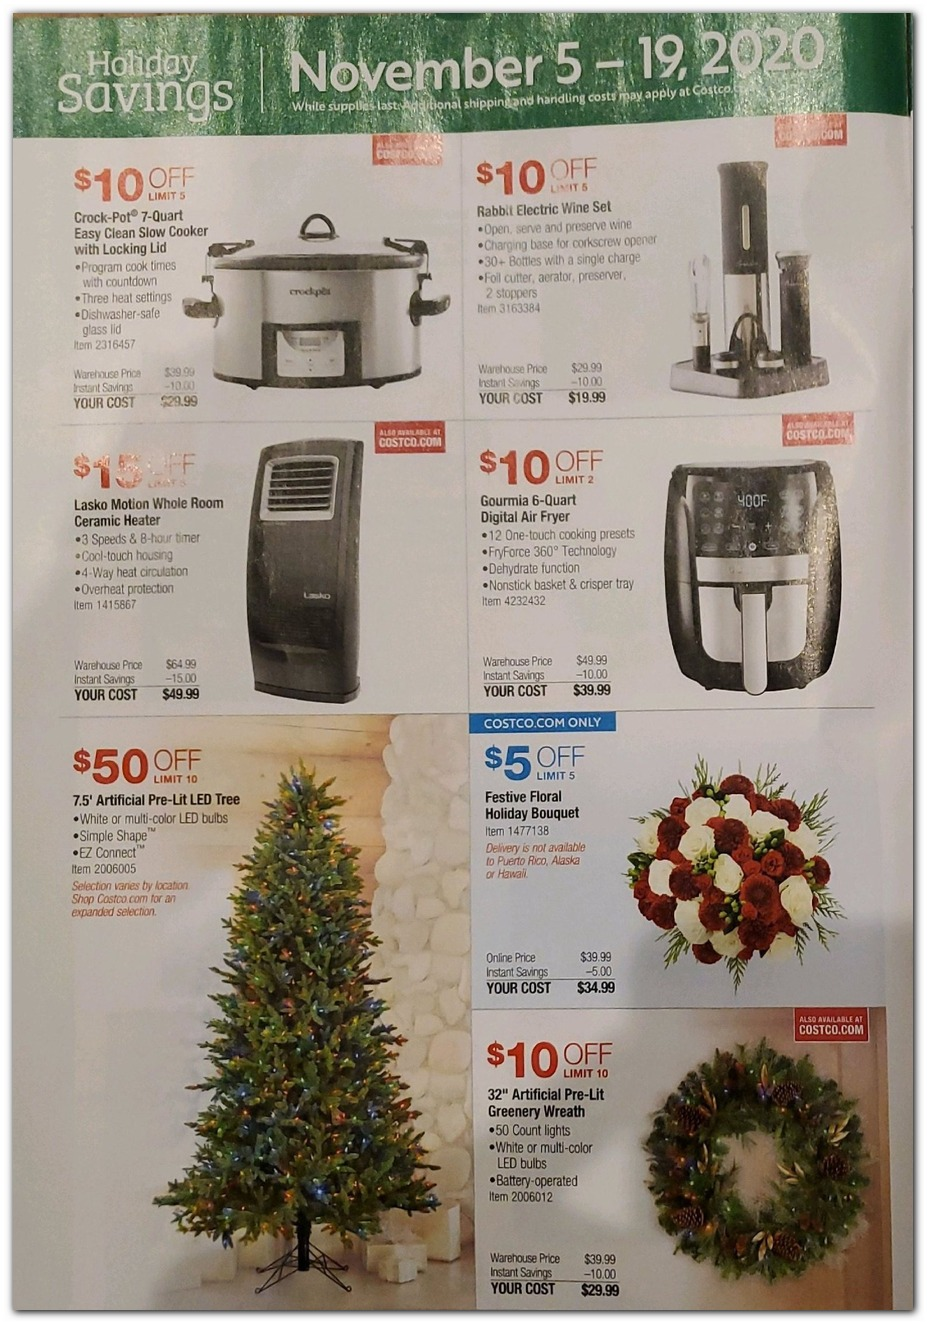 Nov 5 Sale - Small Appliances / Holiday